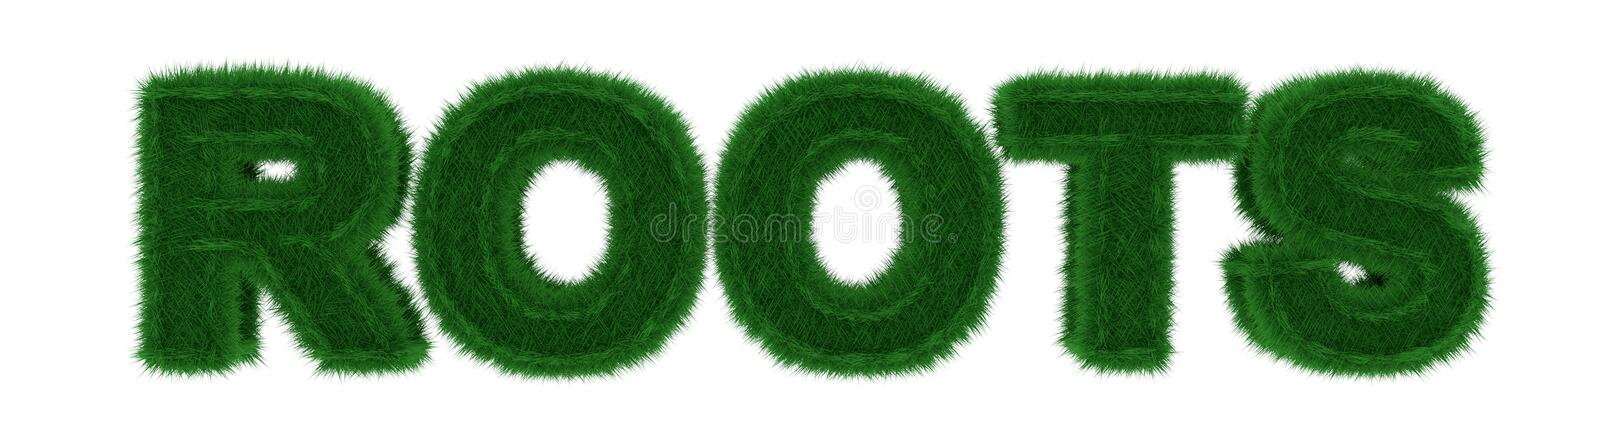 Download Grass Roots stock illustration. Illustration of environment - 29096316